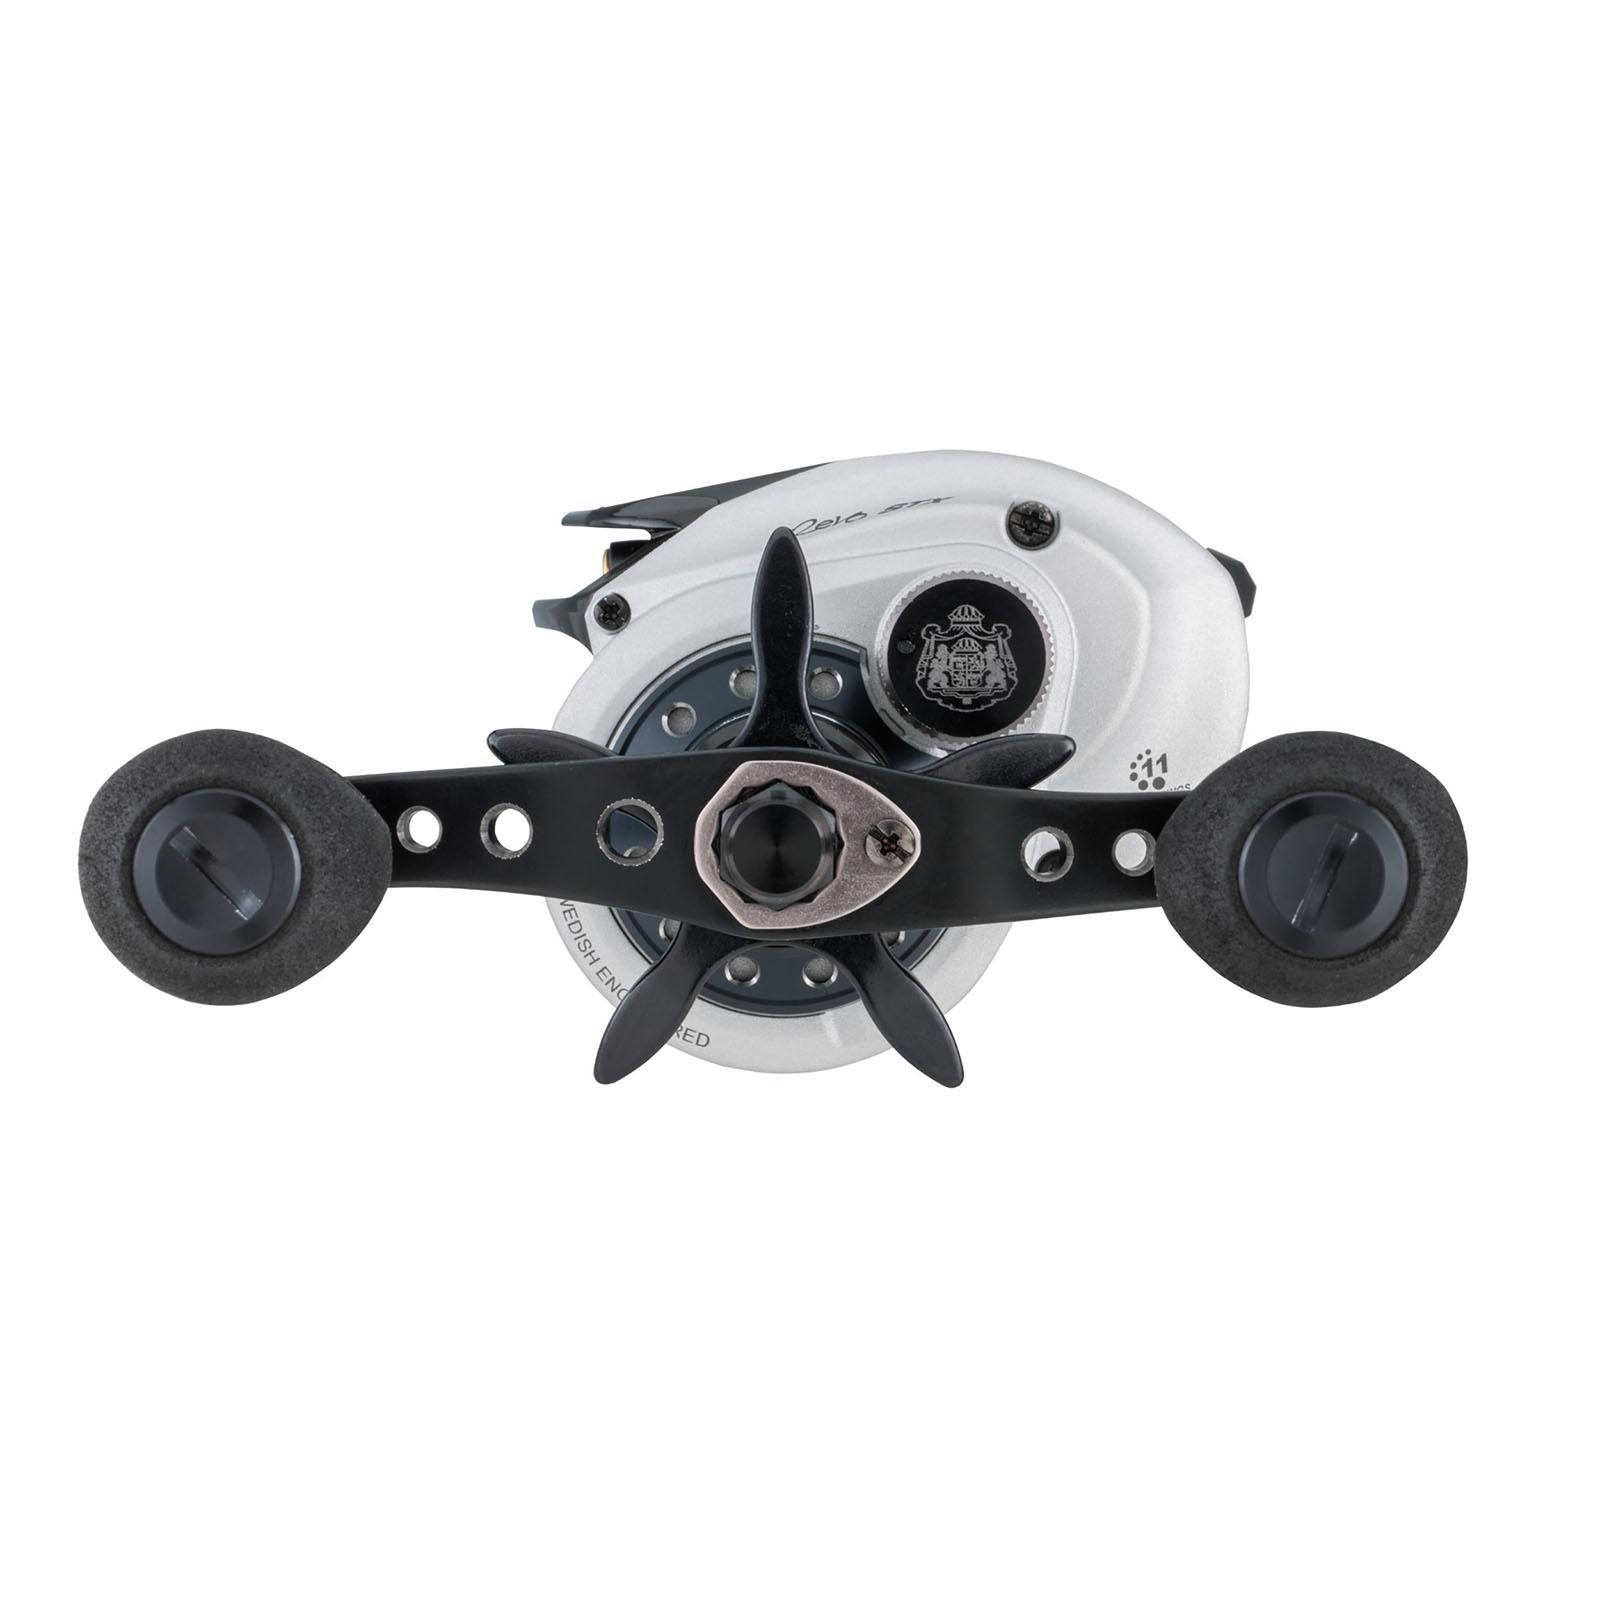 Abu Garcia Revo STX Low-Profile